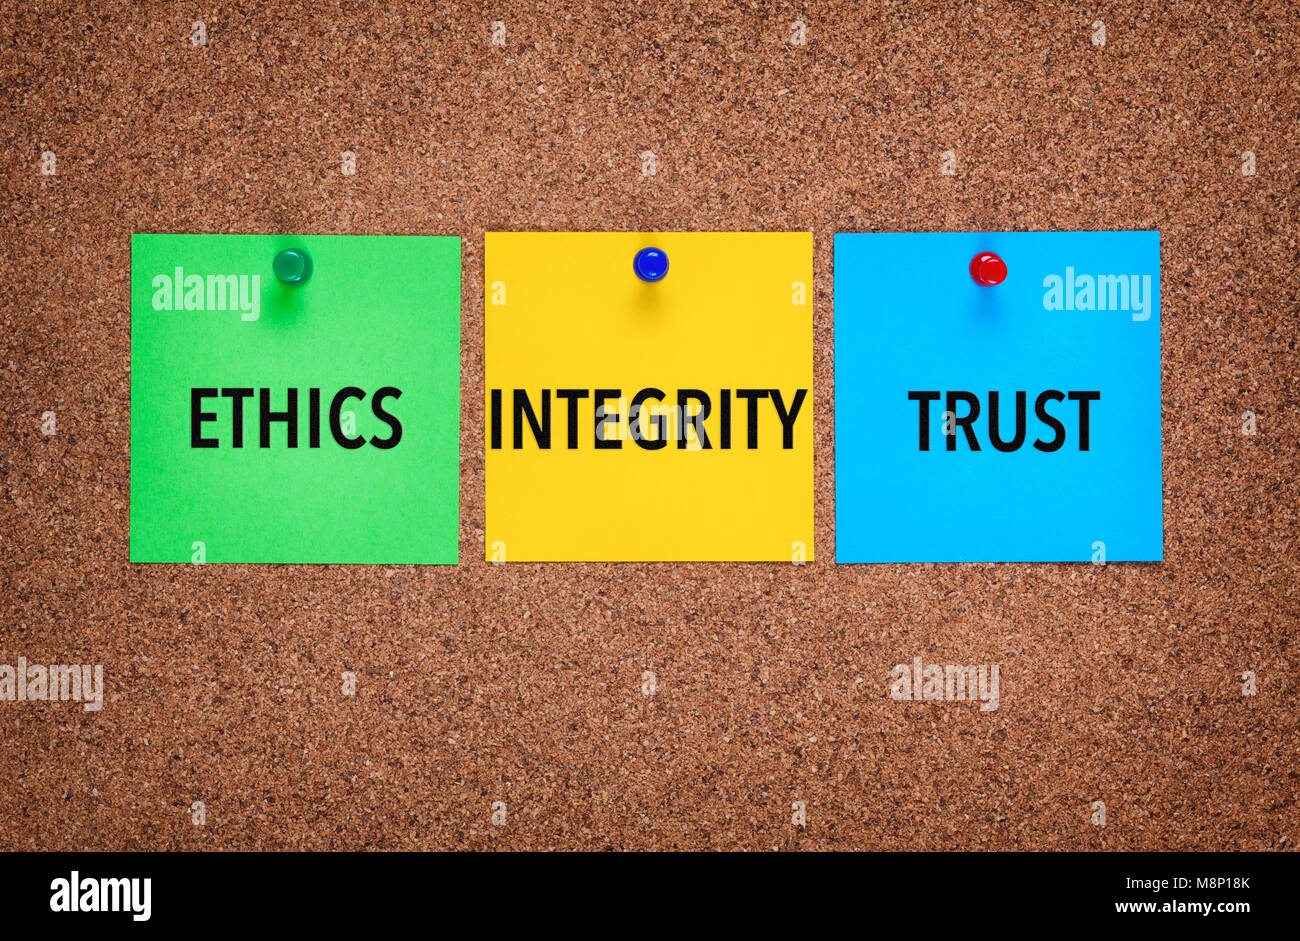 Three notes on corkboard with words Integrity, Trust, Ethics. Close-up. - Stock Image